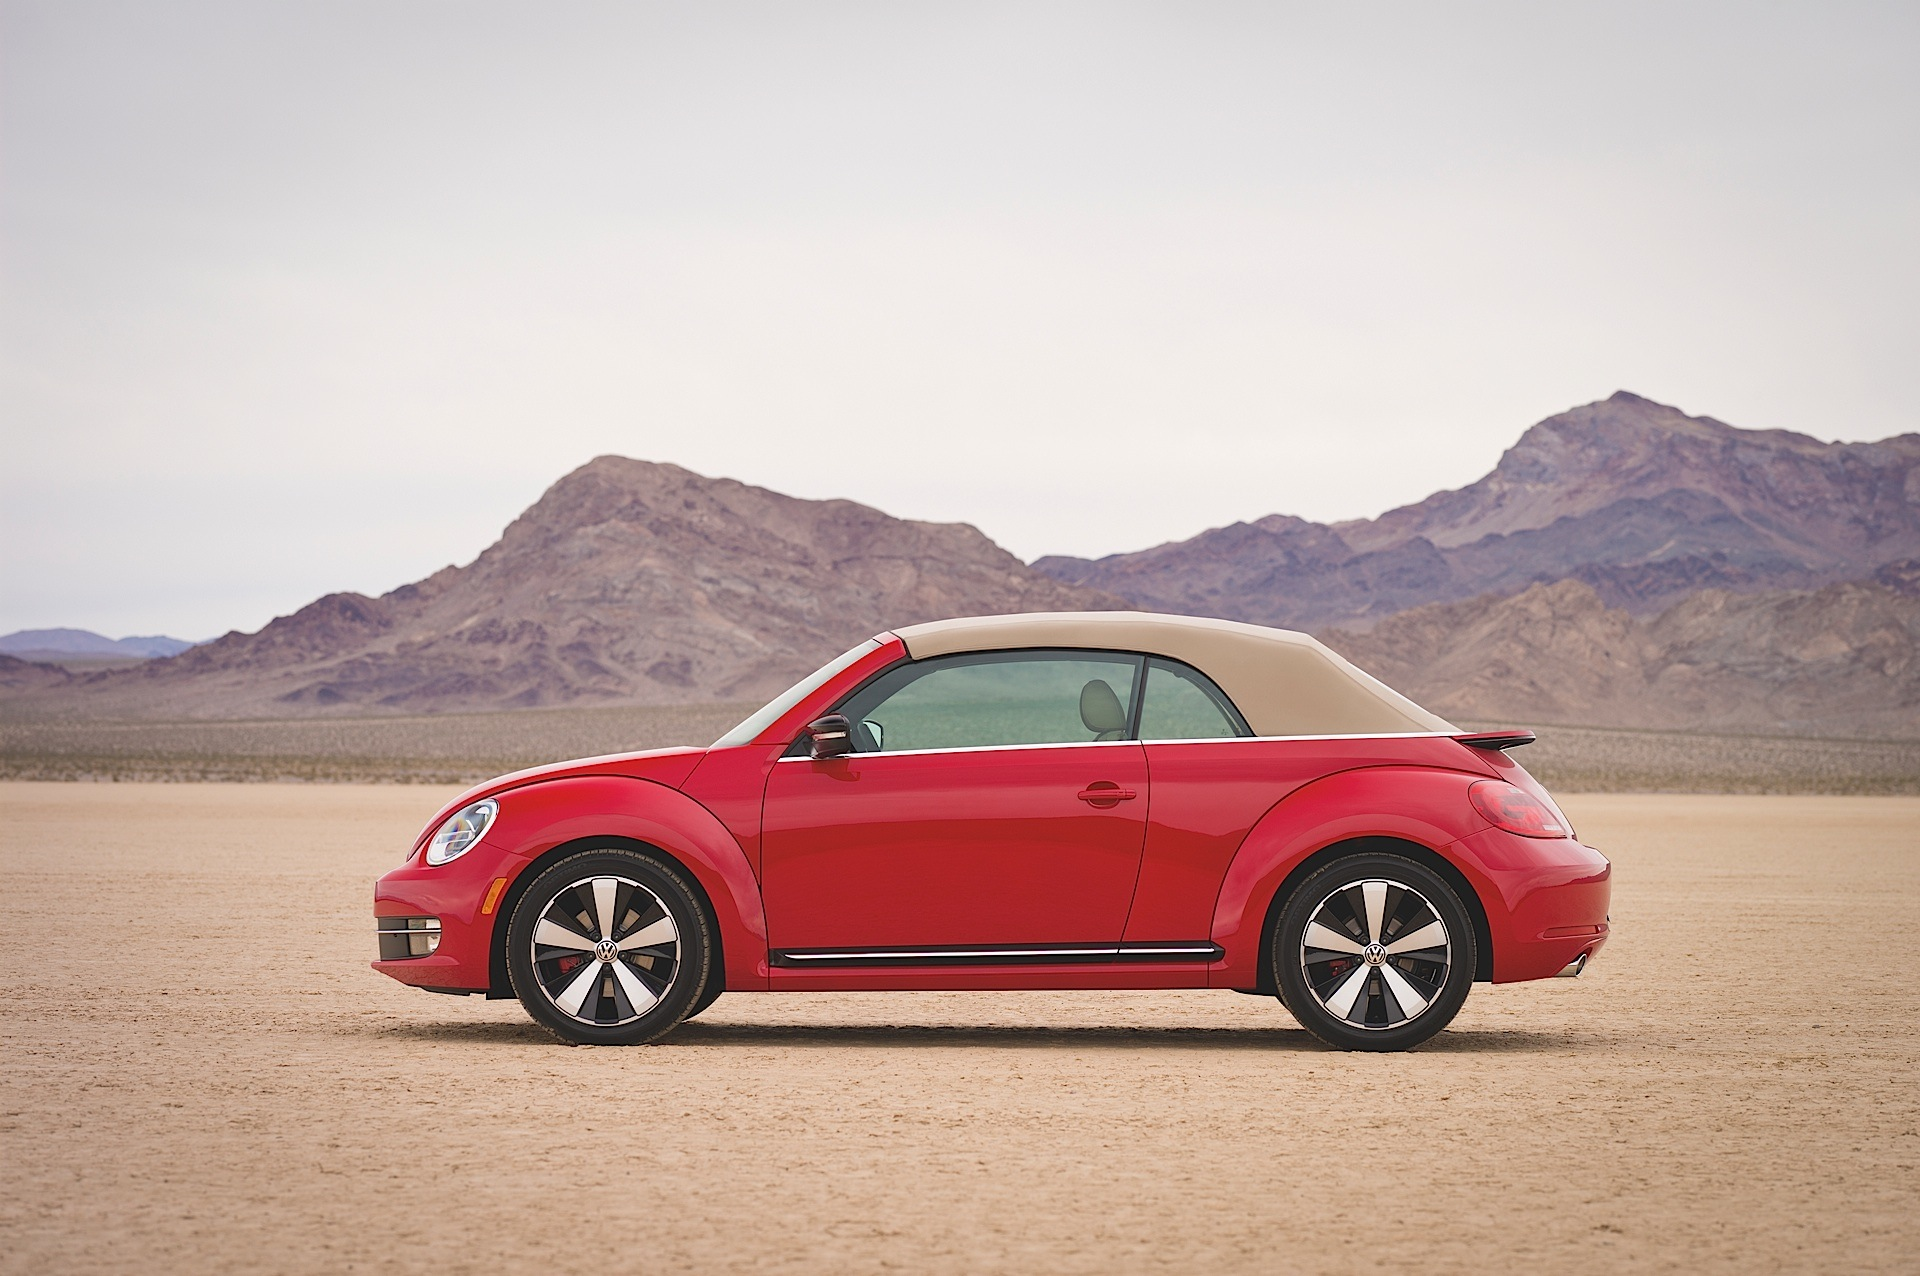 volkswagen beetle cabriolet specs photos 2013 2014 2015 2016 2017 2018 autoevolution. Black Bedroom Furniture Sets. Home Design Ideas